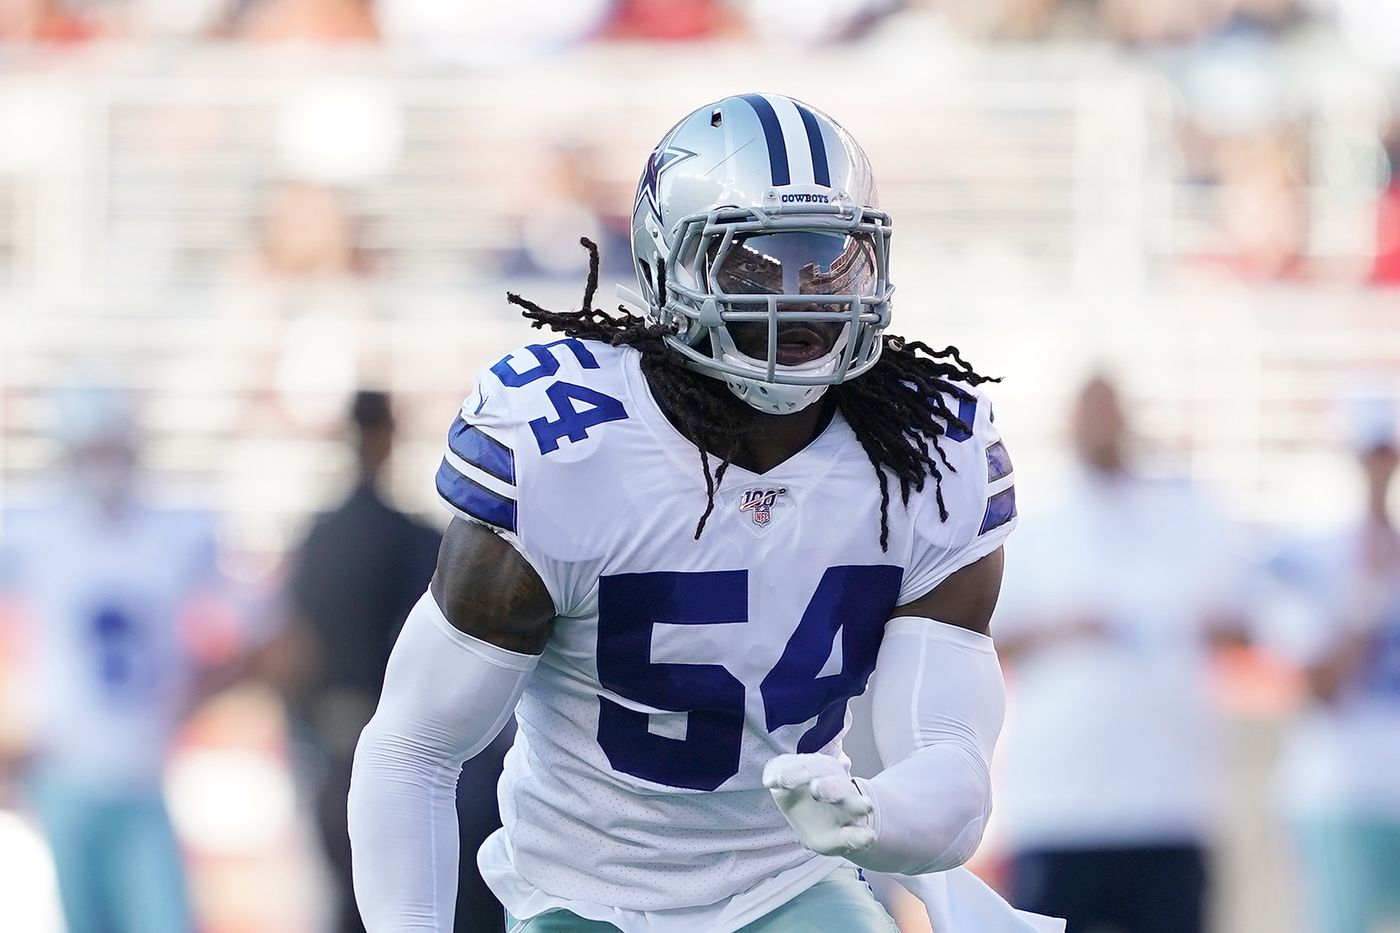 100% authentic 59a14 d0992 The Cowboys got a great deal with Jaylon Smith because he ...